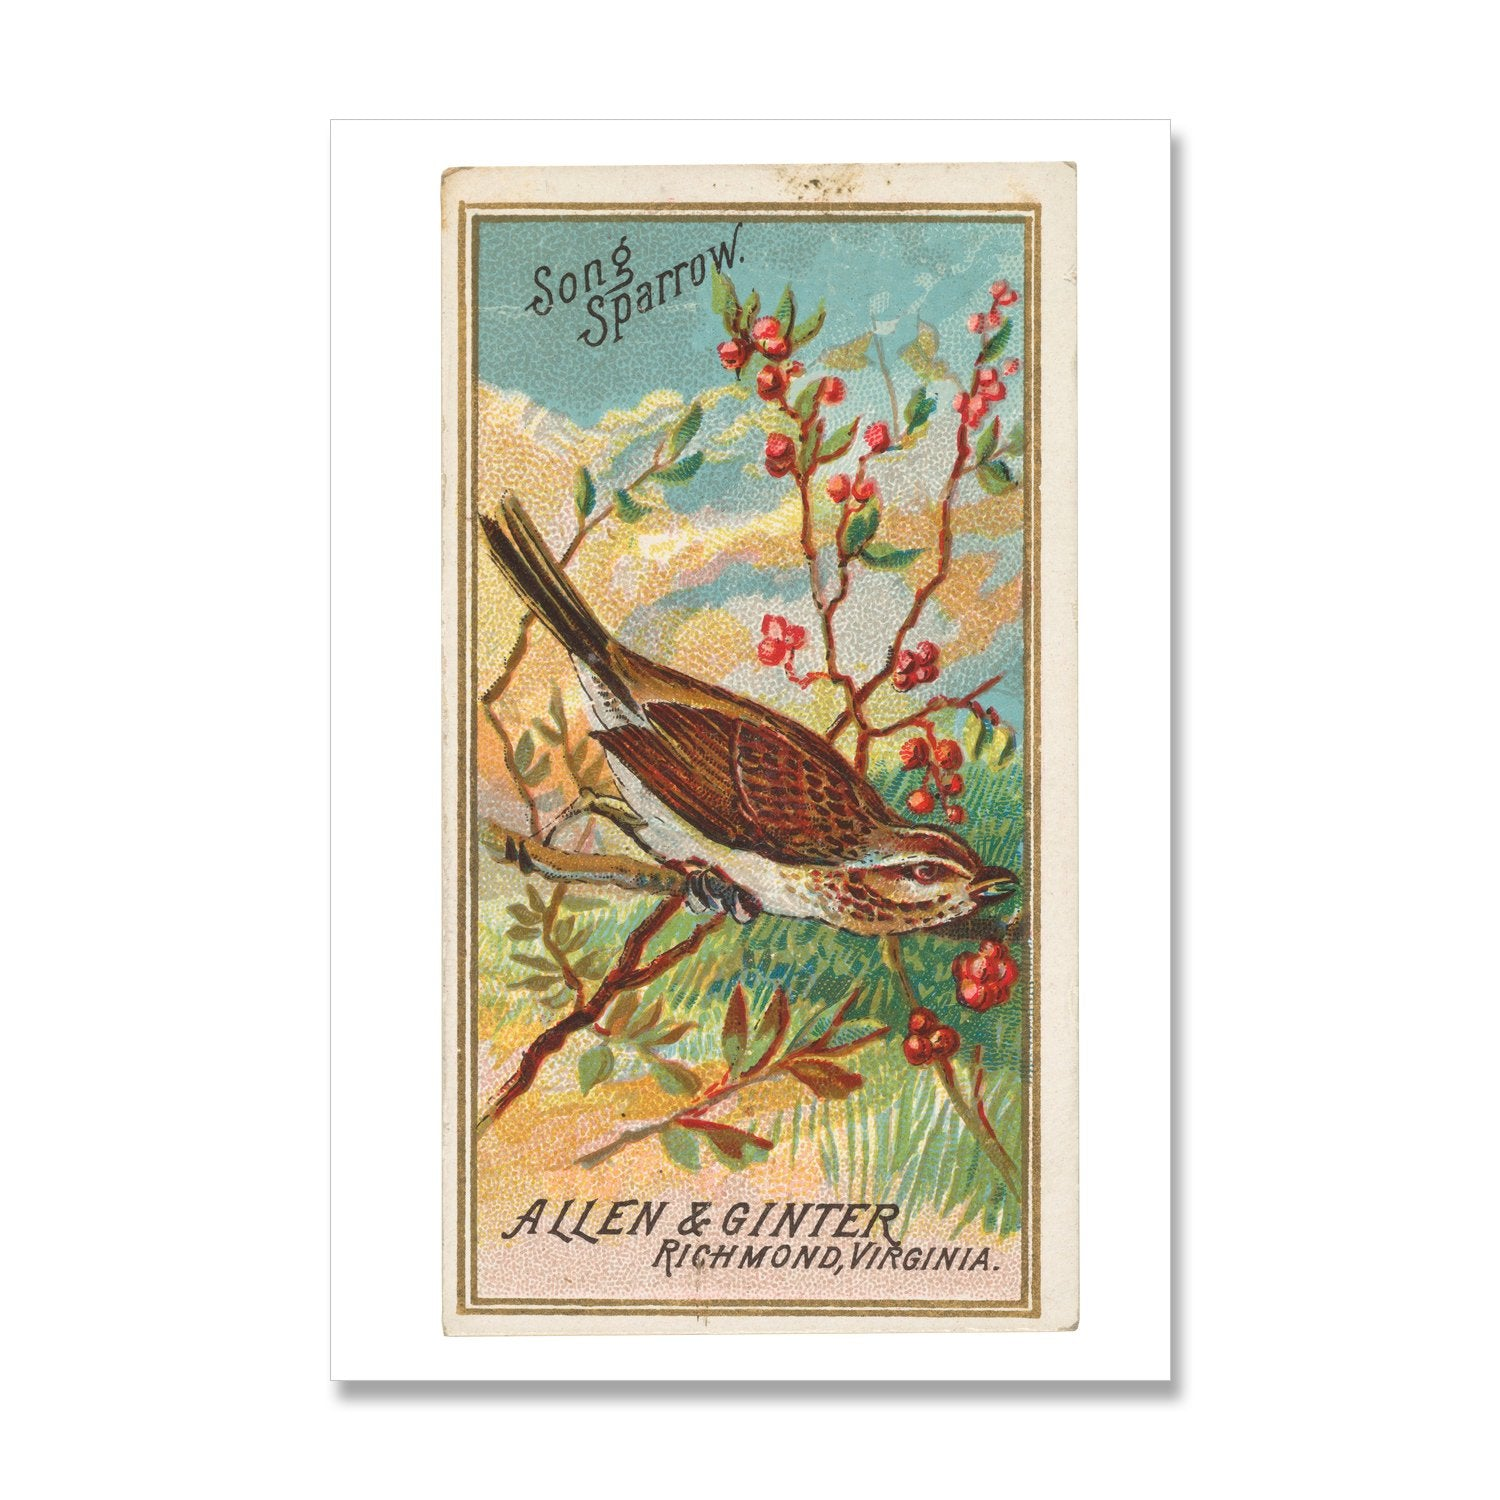 vintage bird print of song sparrow